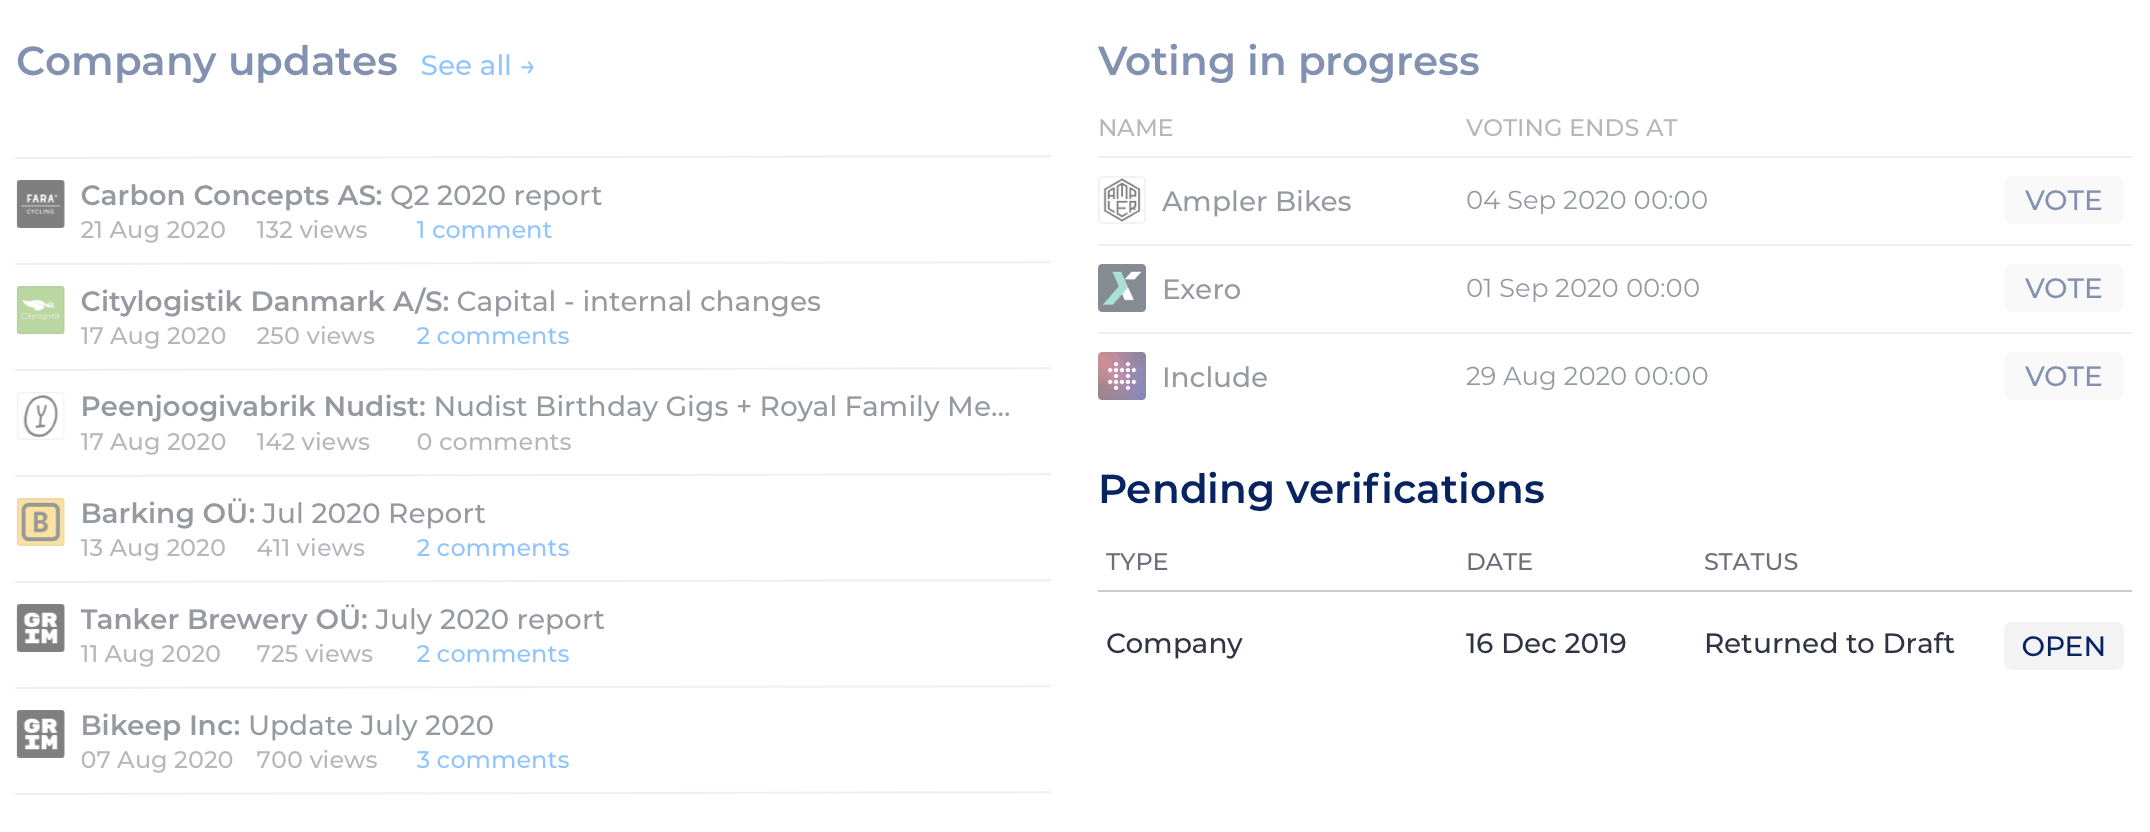 Pending verifications block on the Dashboard